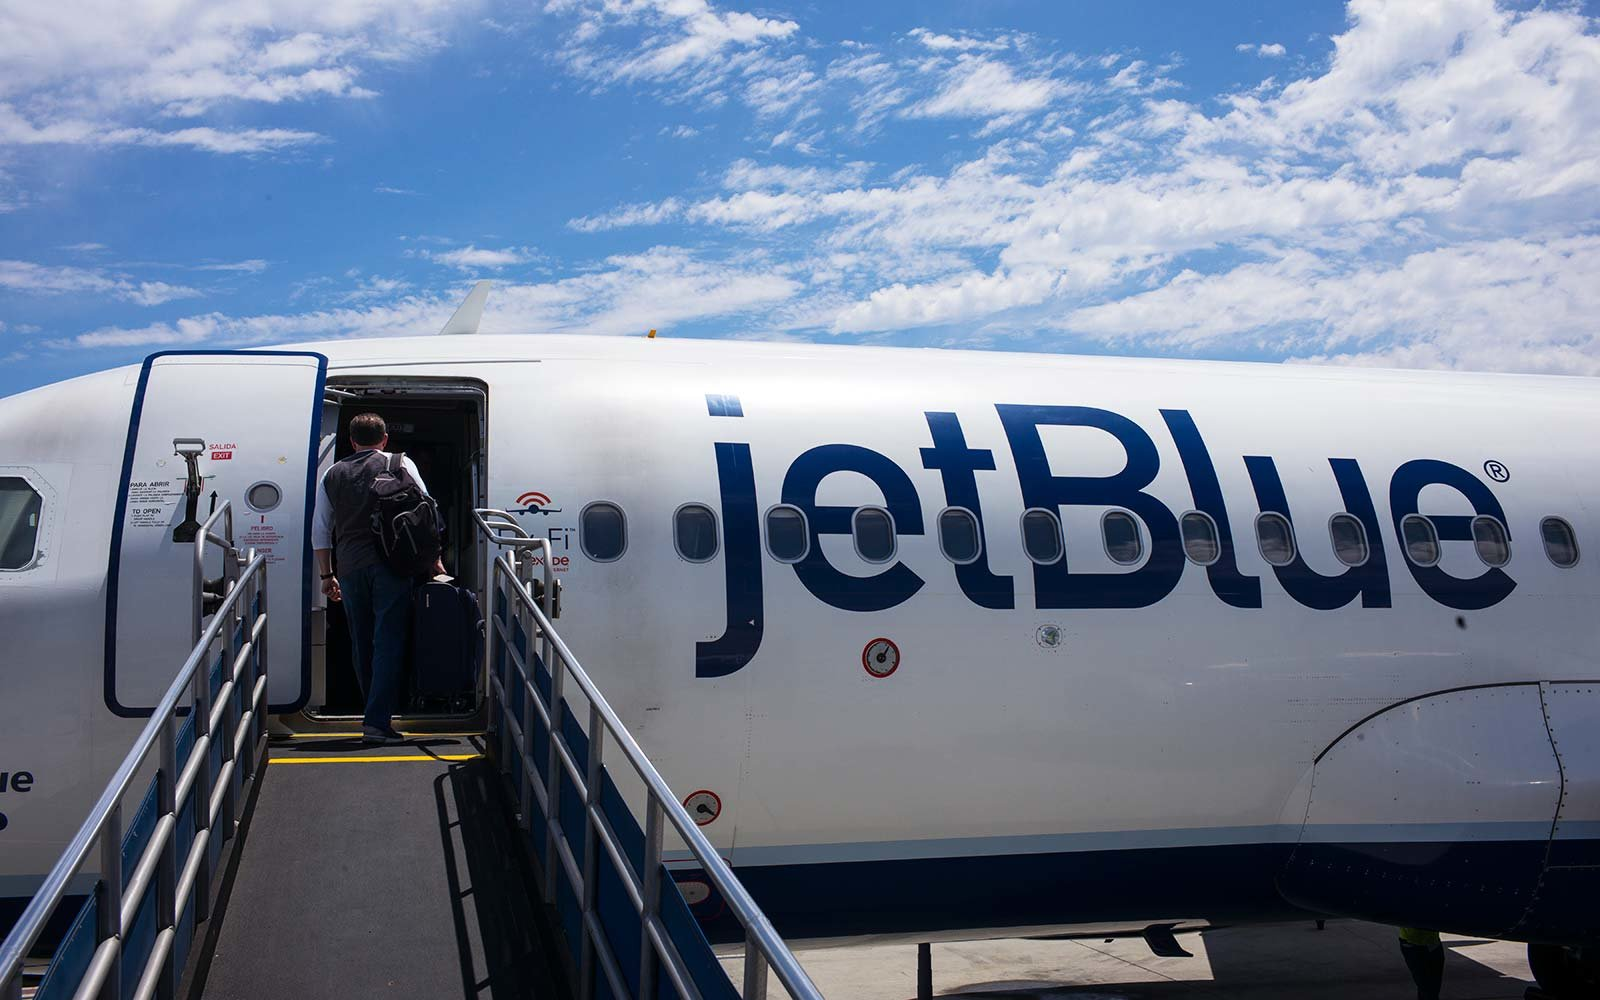 jetblue airlines airplane volunteer passenger flight